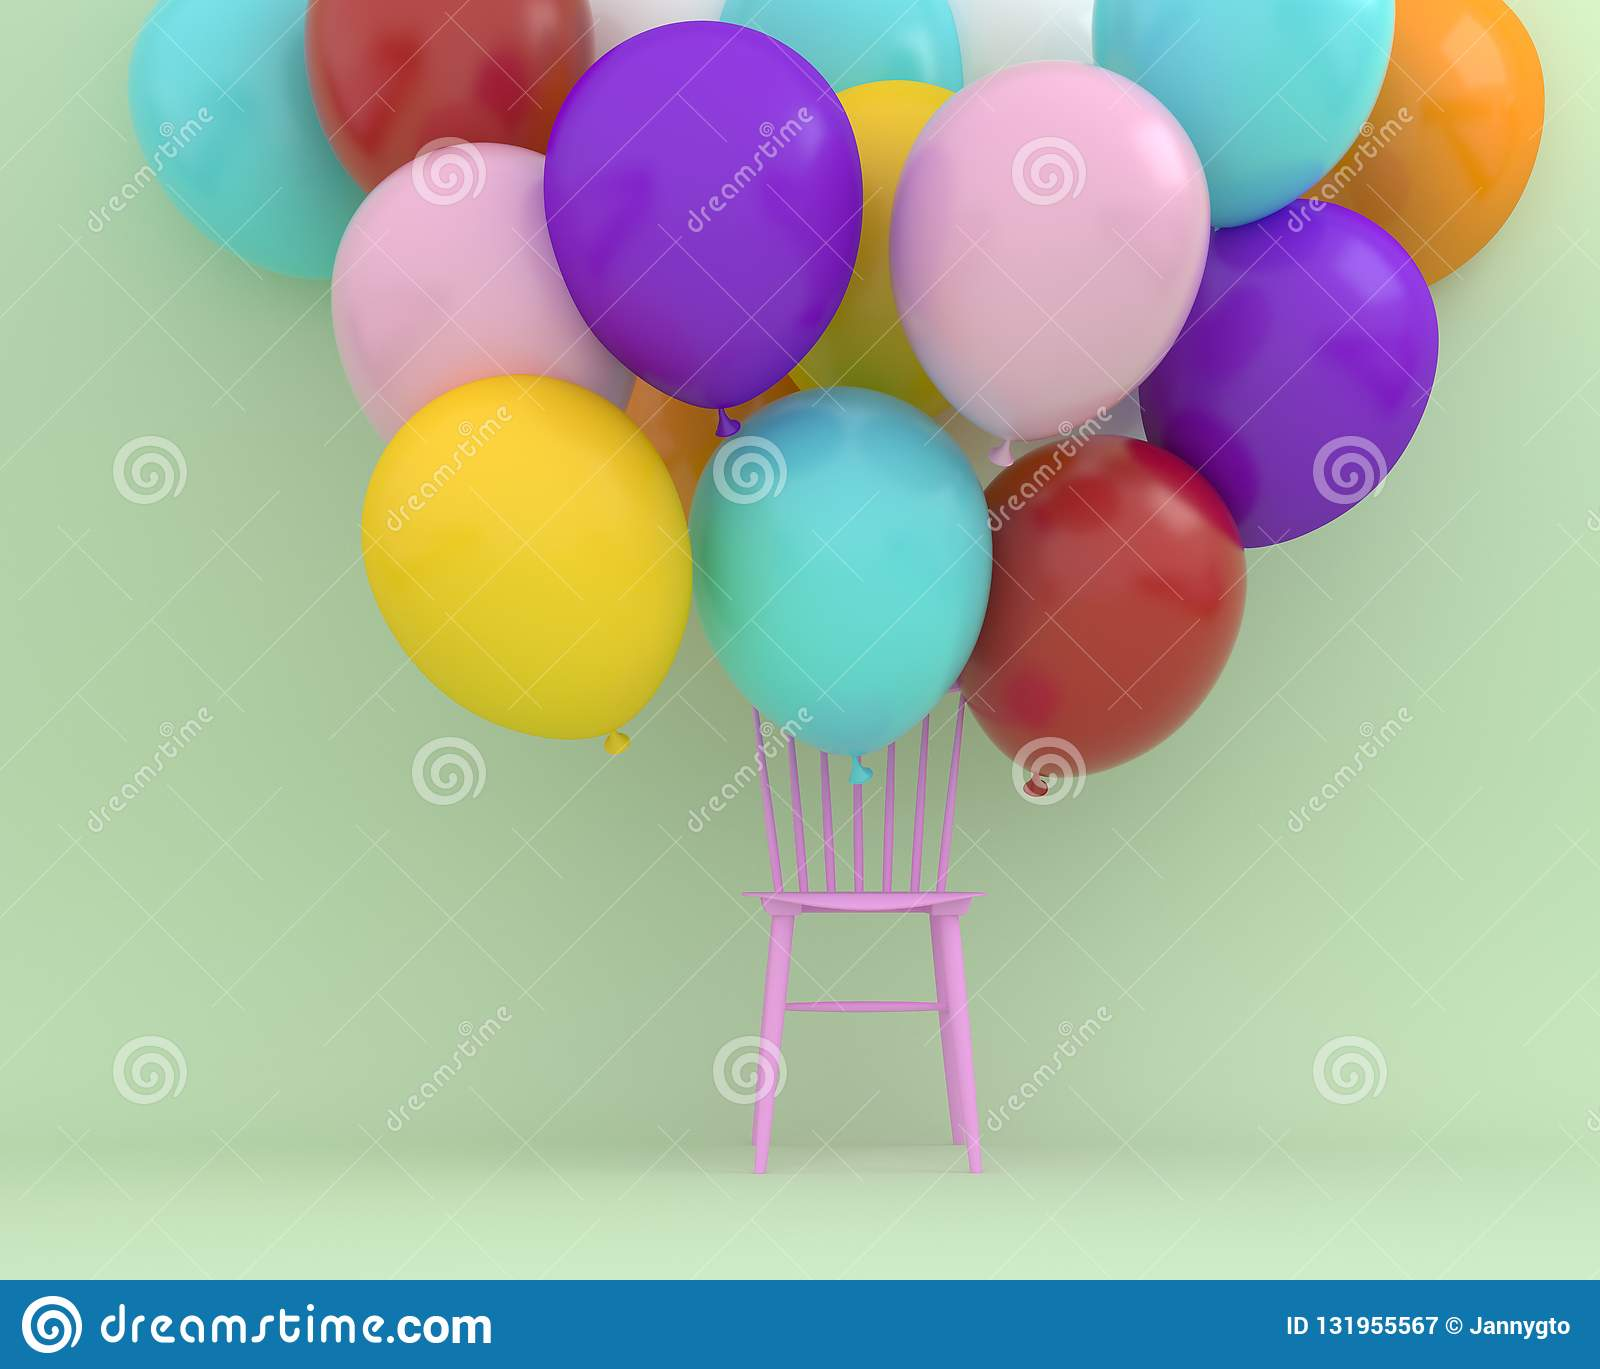 chair with balloons eames replica chairs melbourne colorful floating pink on green color background creative layout made for festival